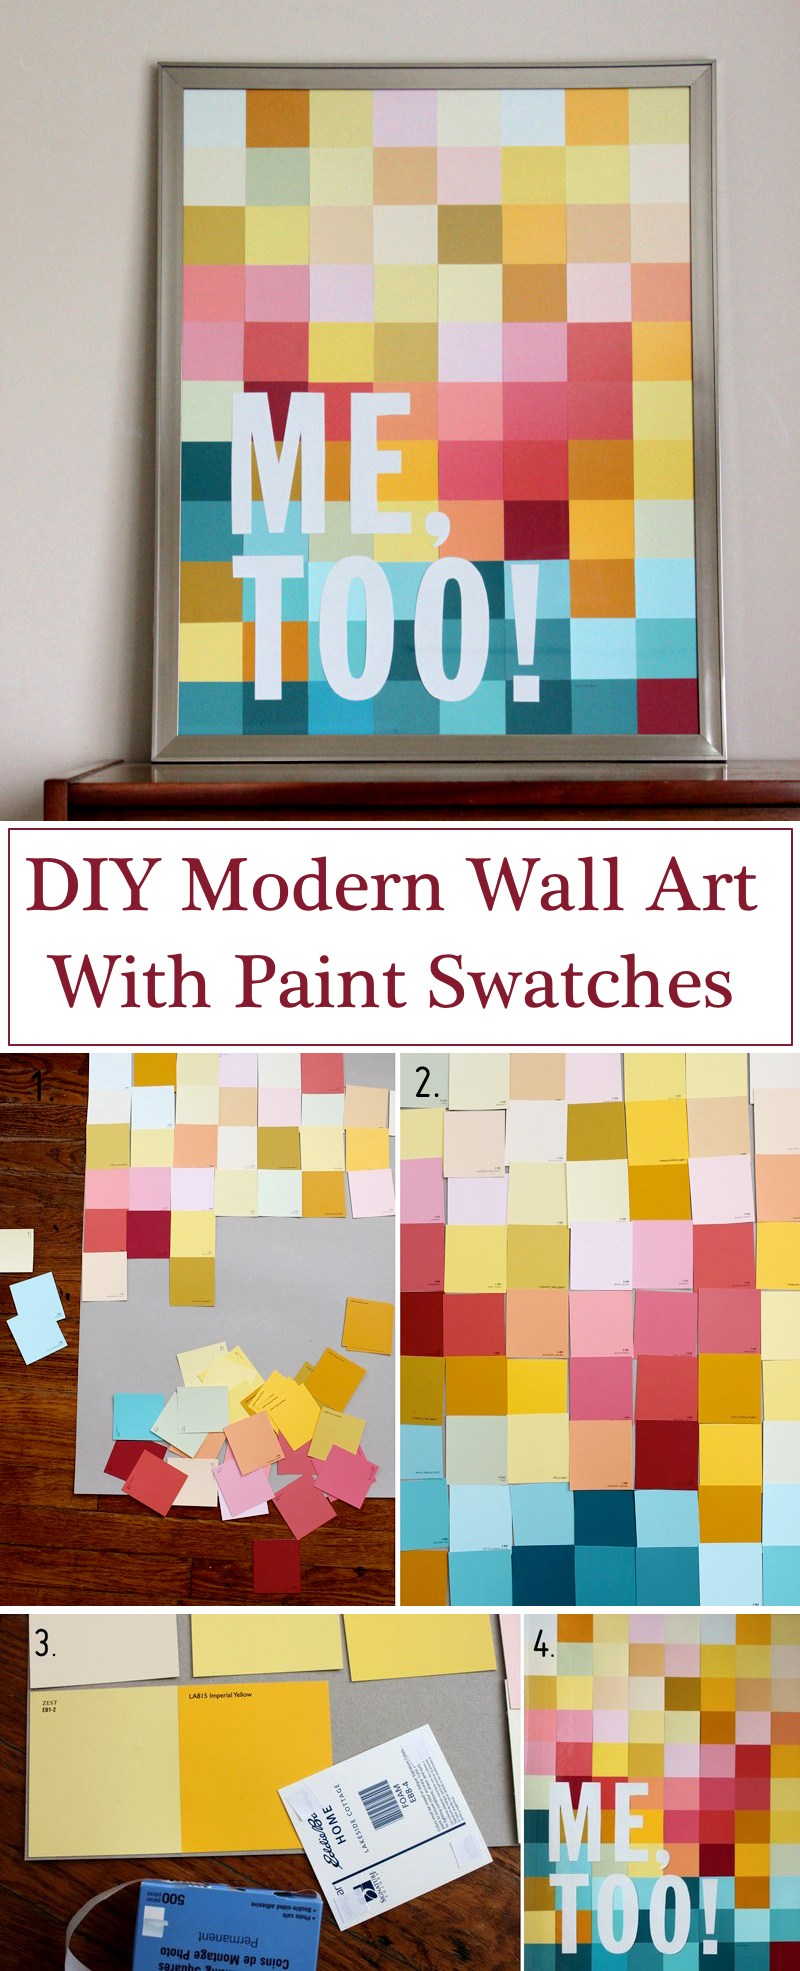 19 simple diy wall art ideas for your home homelovr for Diy contemporary art